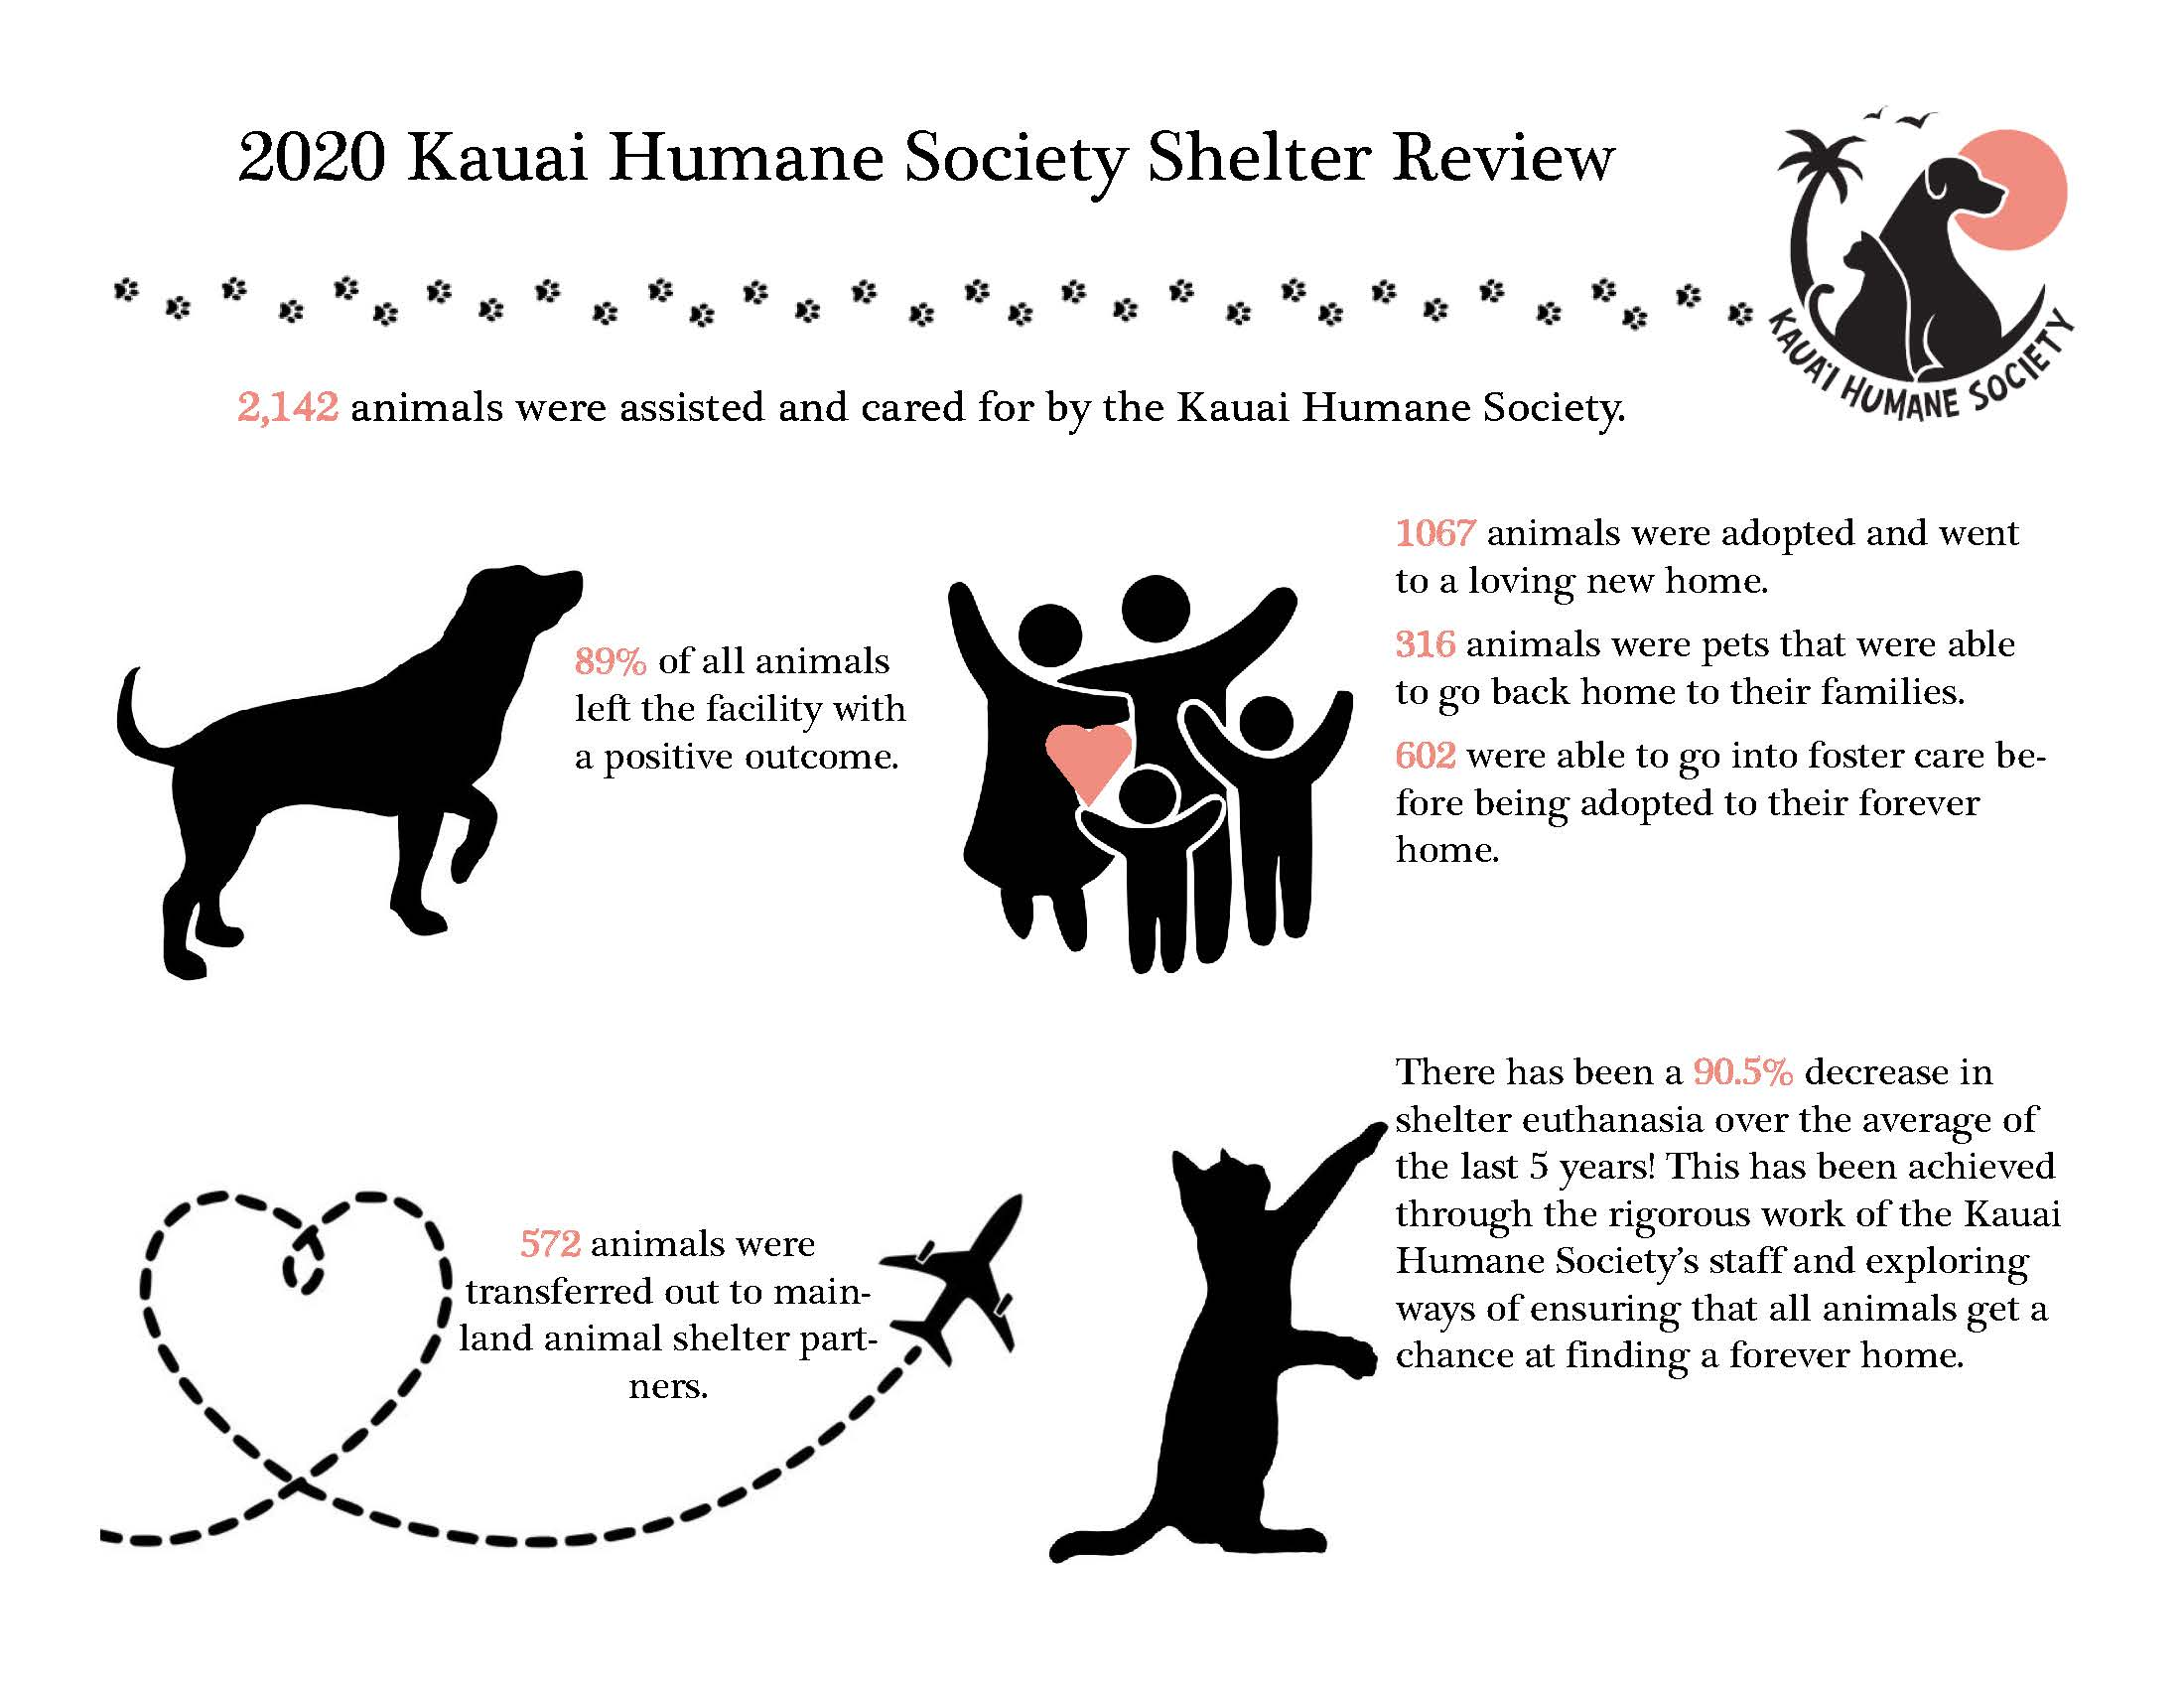 Check out the Kauai Humane Society's 2020 numbers